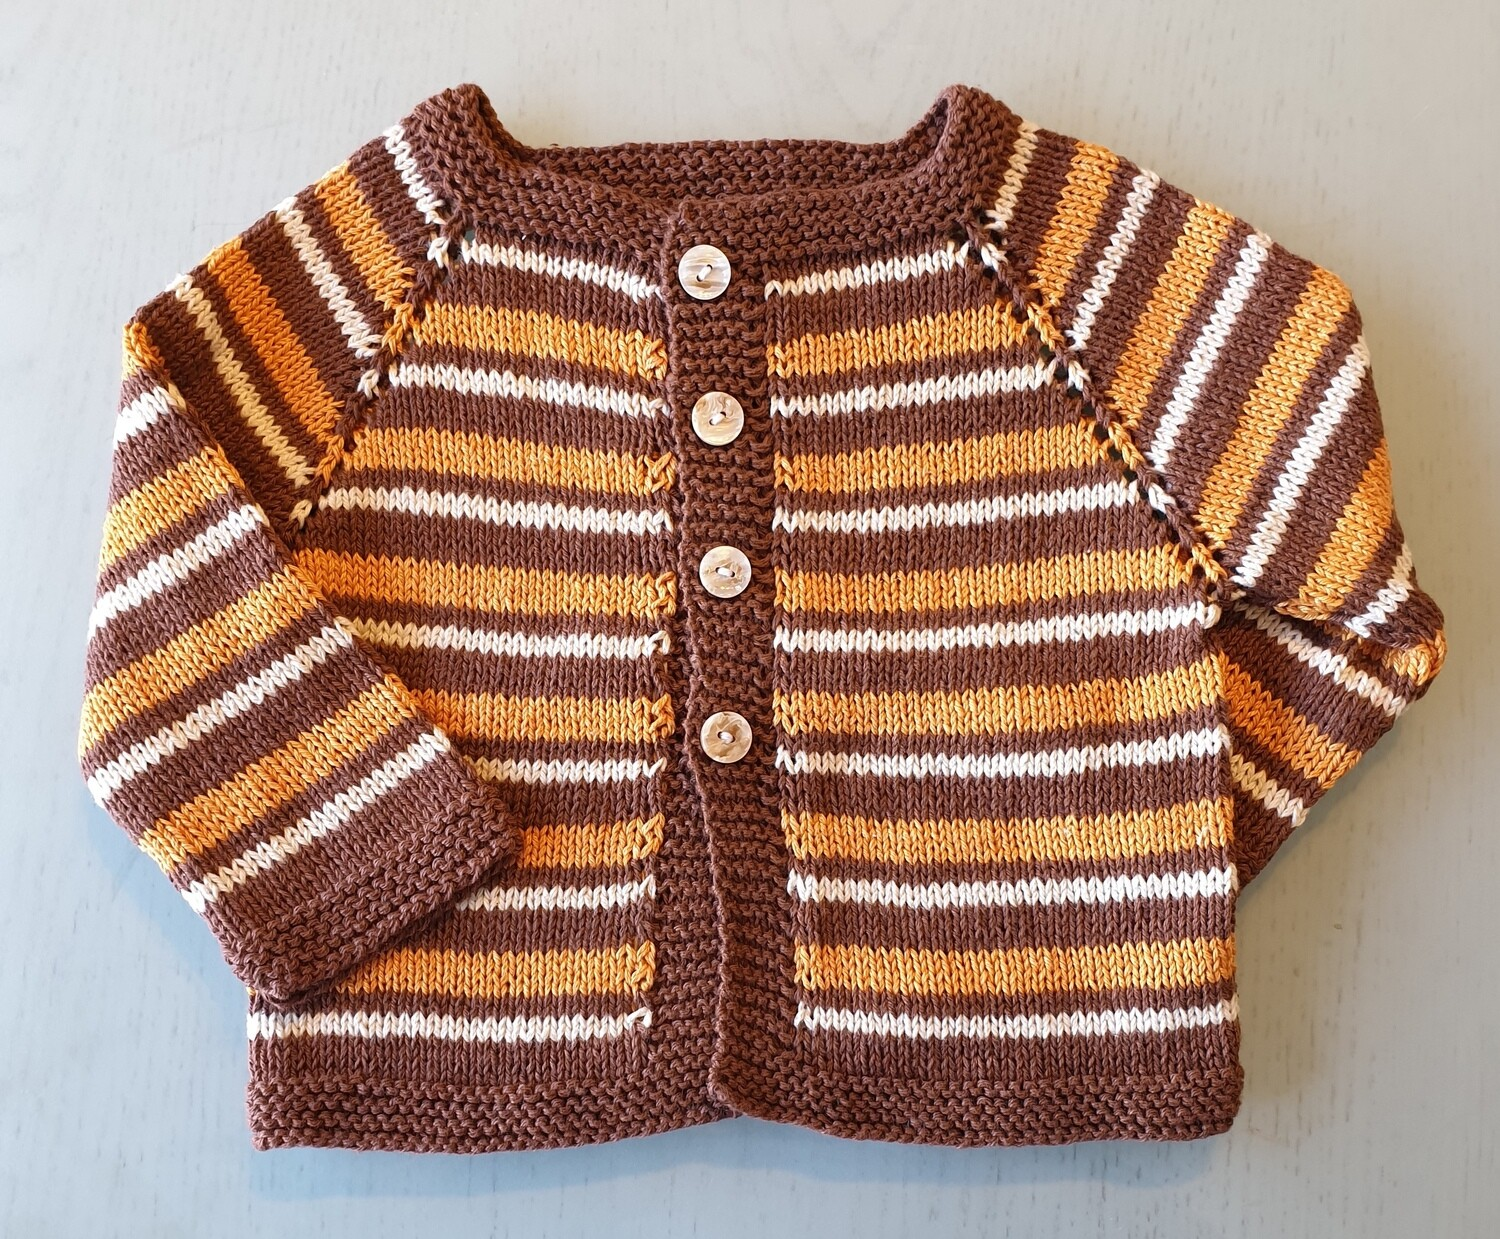 Brown & Orange & White Striped Jacket (Medium/Large)